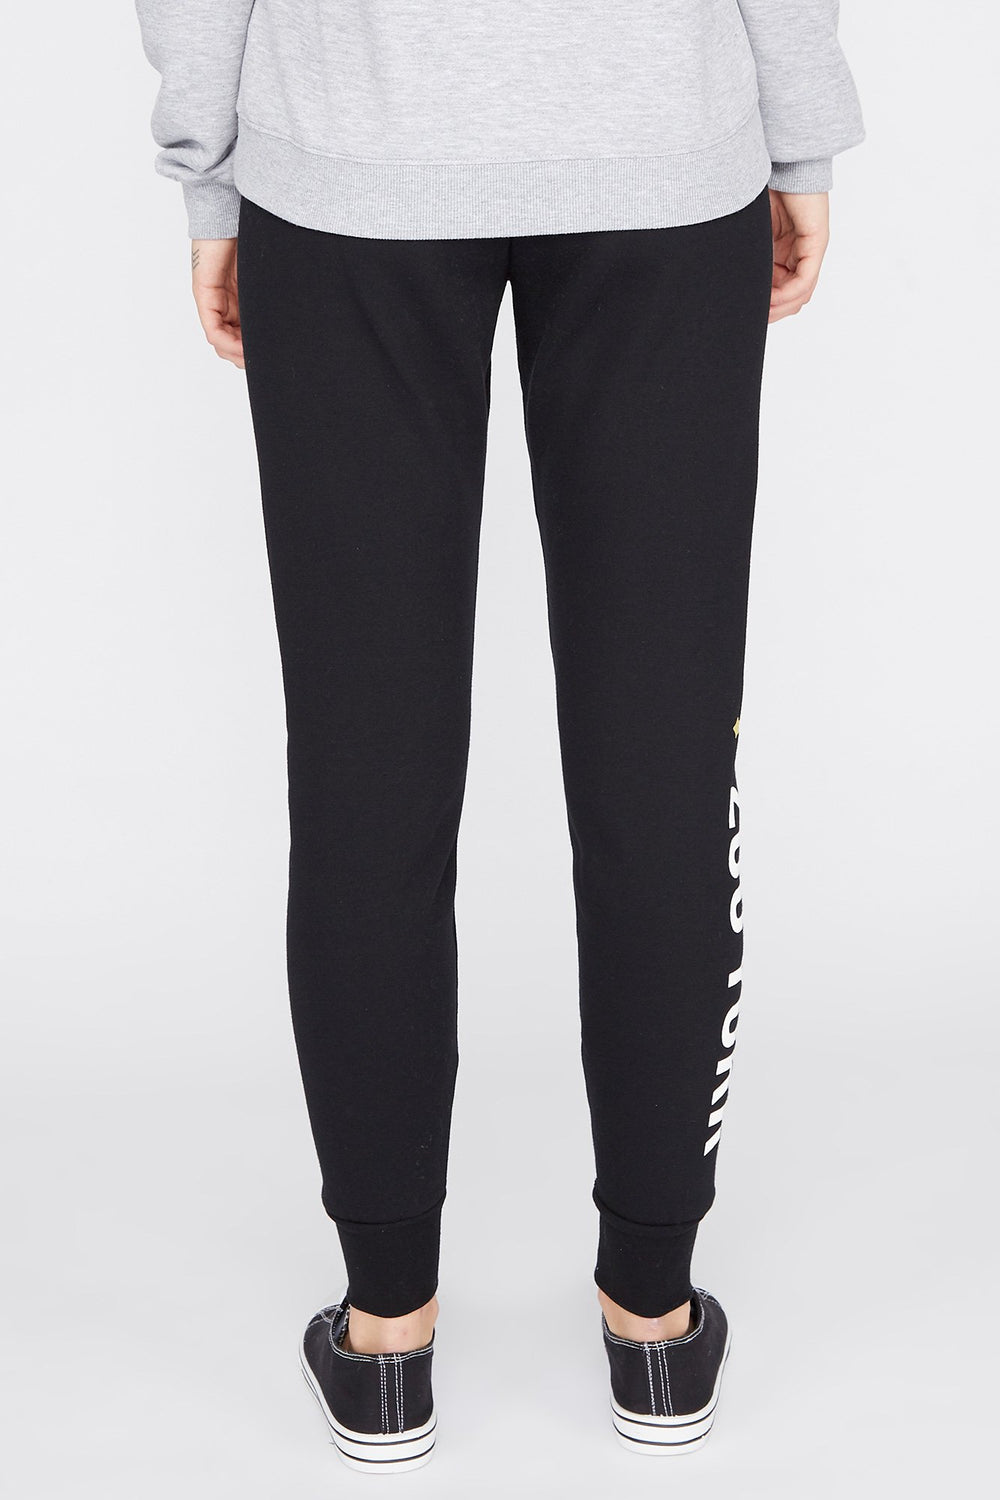 Zoo York Womens Fleece Joggers Black